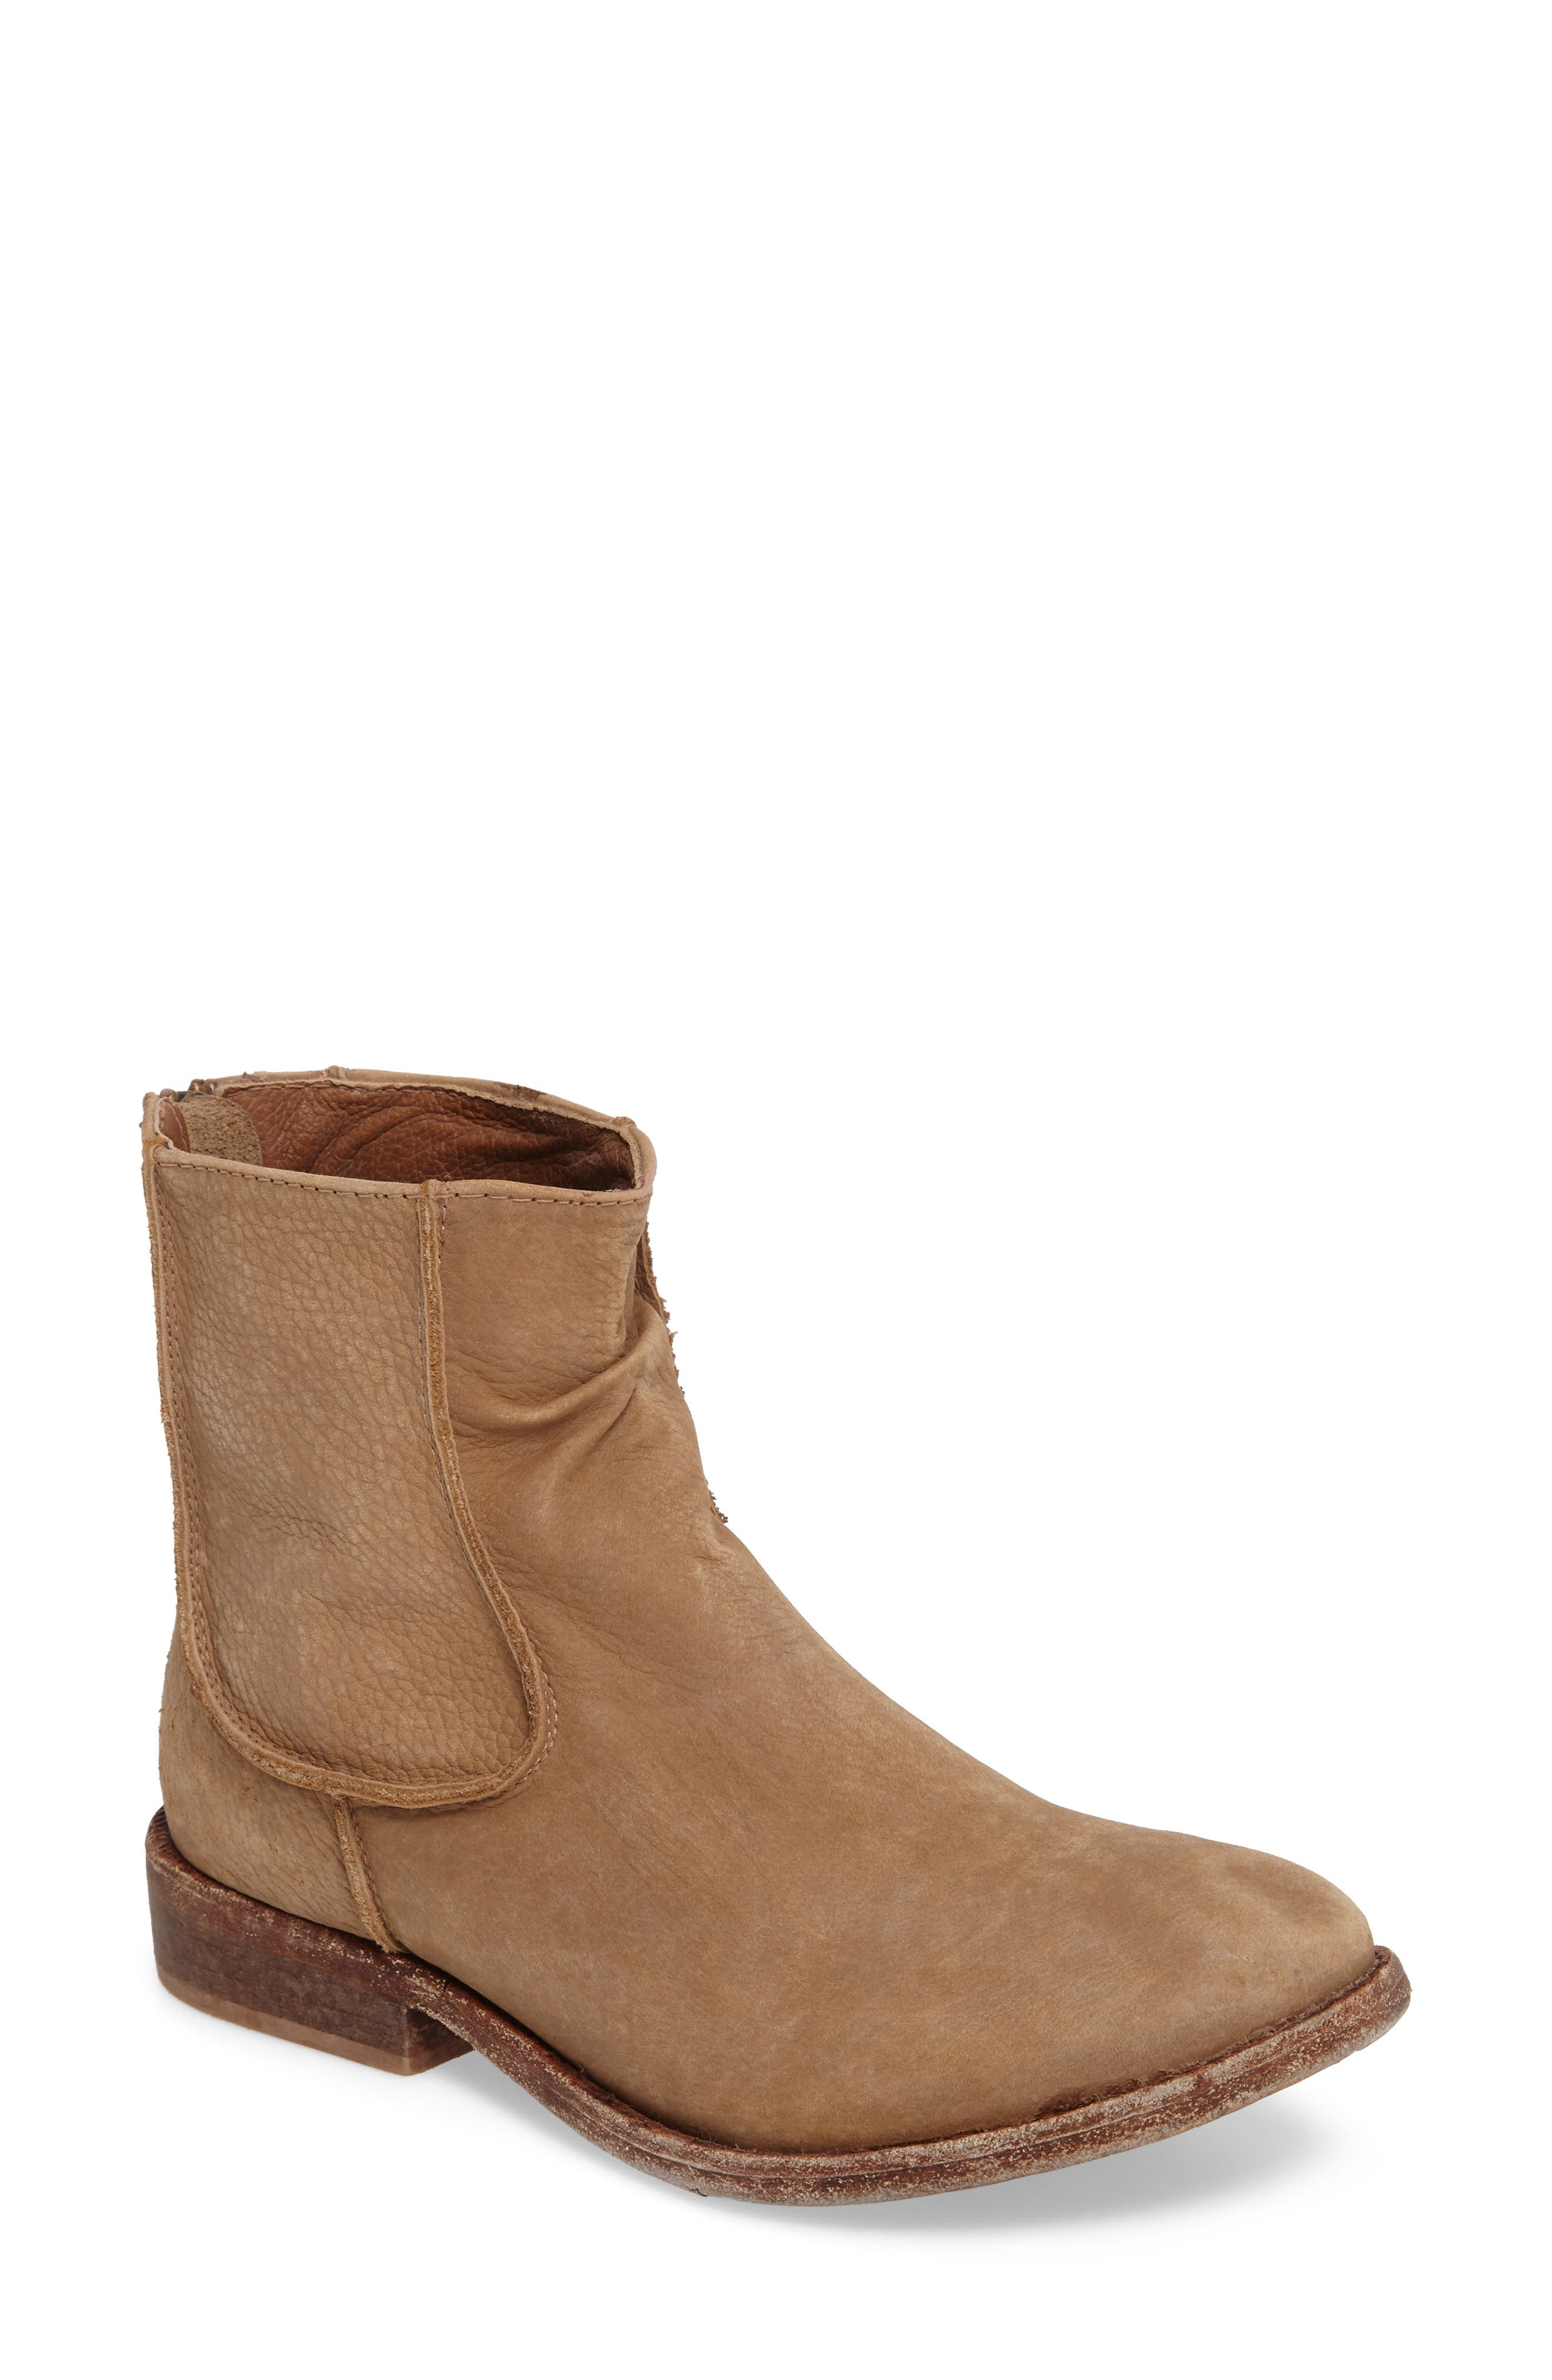 'Gerald' Distressed Bootie,                             Main thumbnail 3, color,